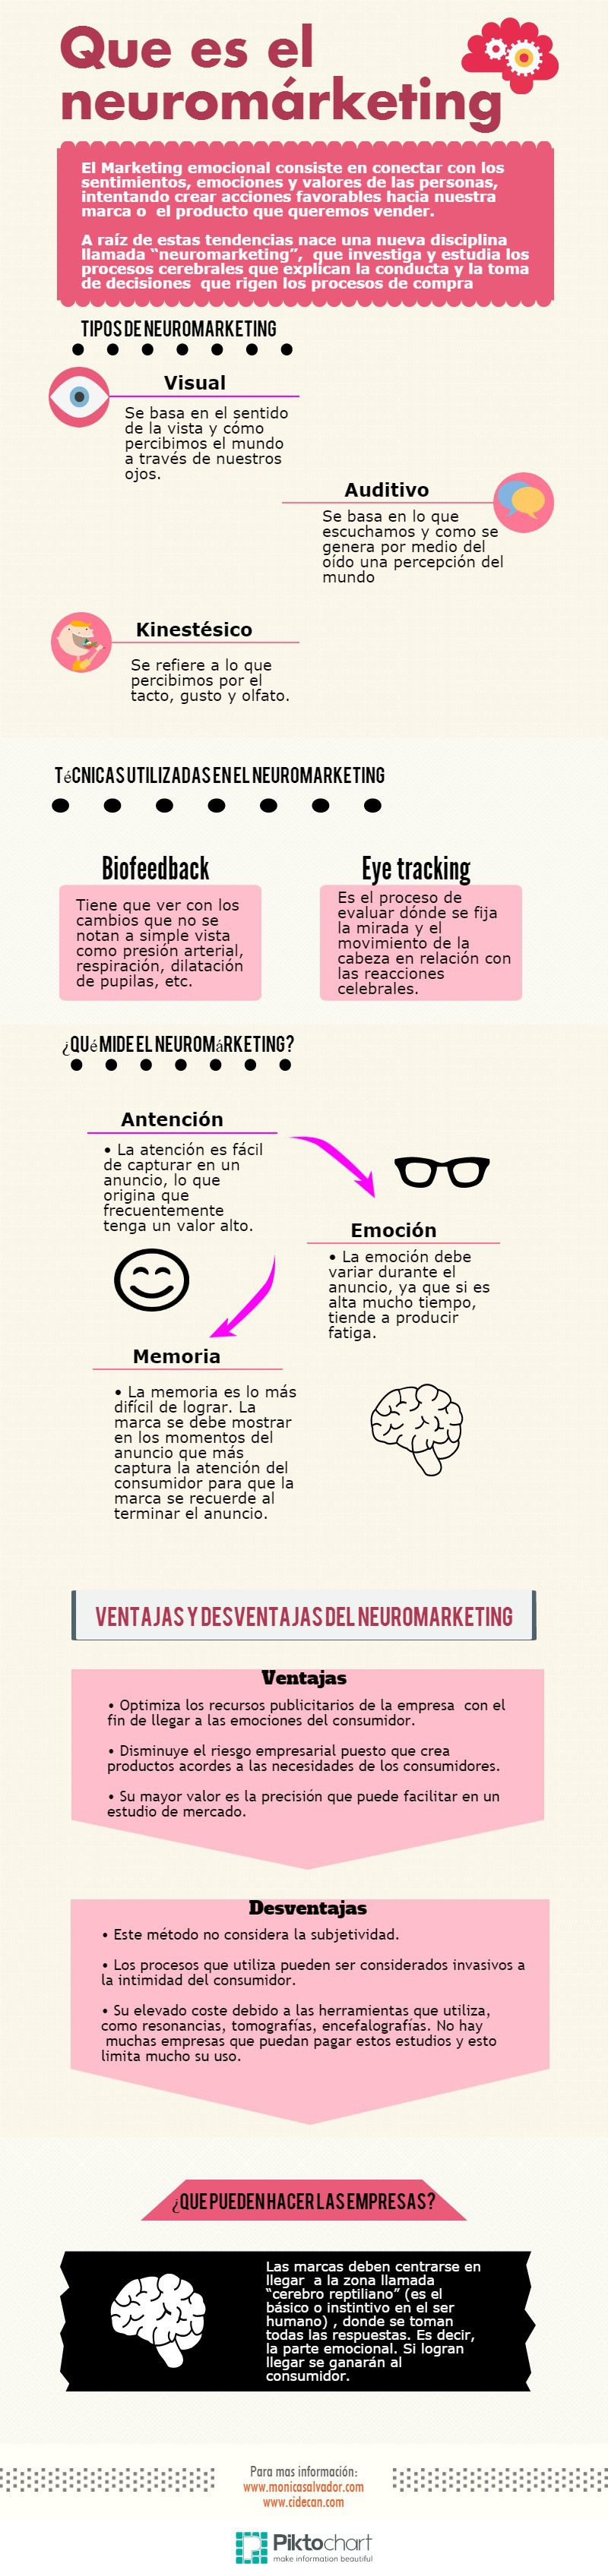 Que Es El Neuromarketing Infografia Infographic Psychology